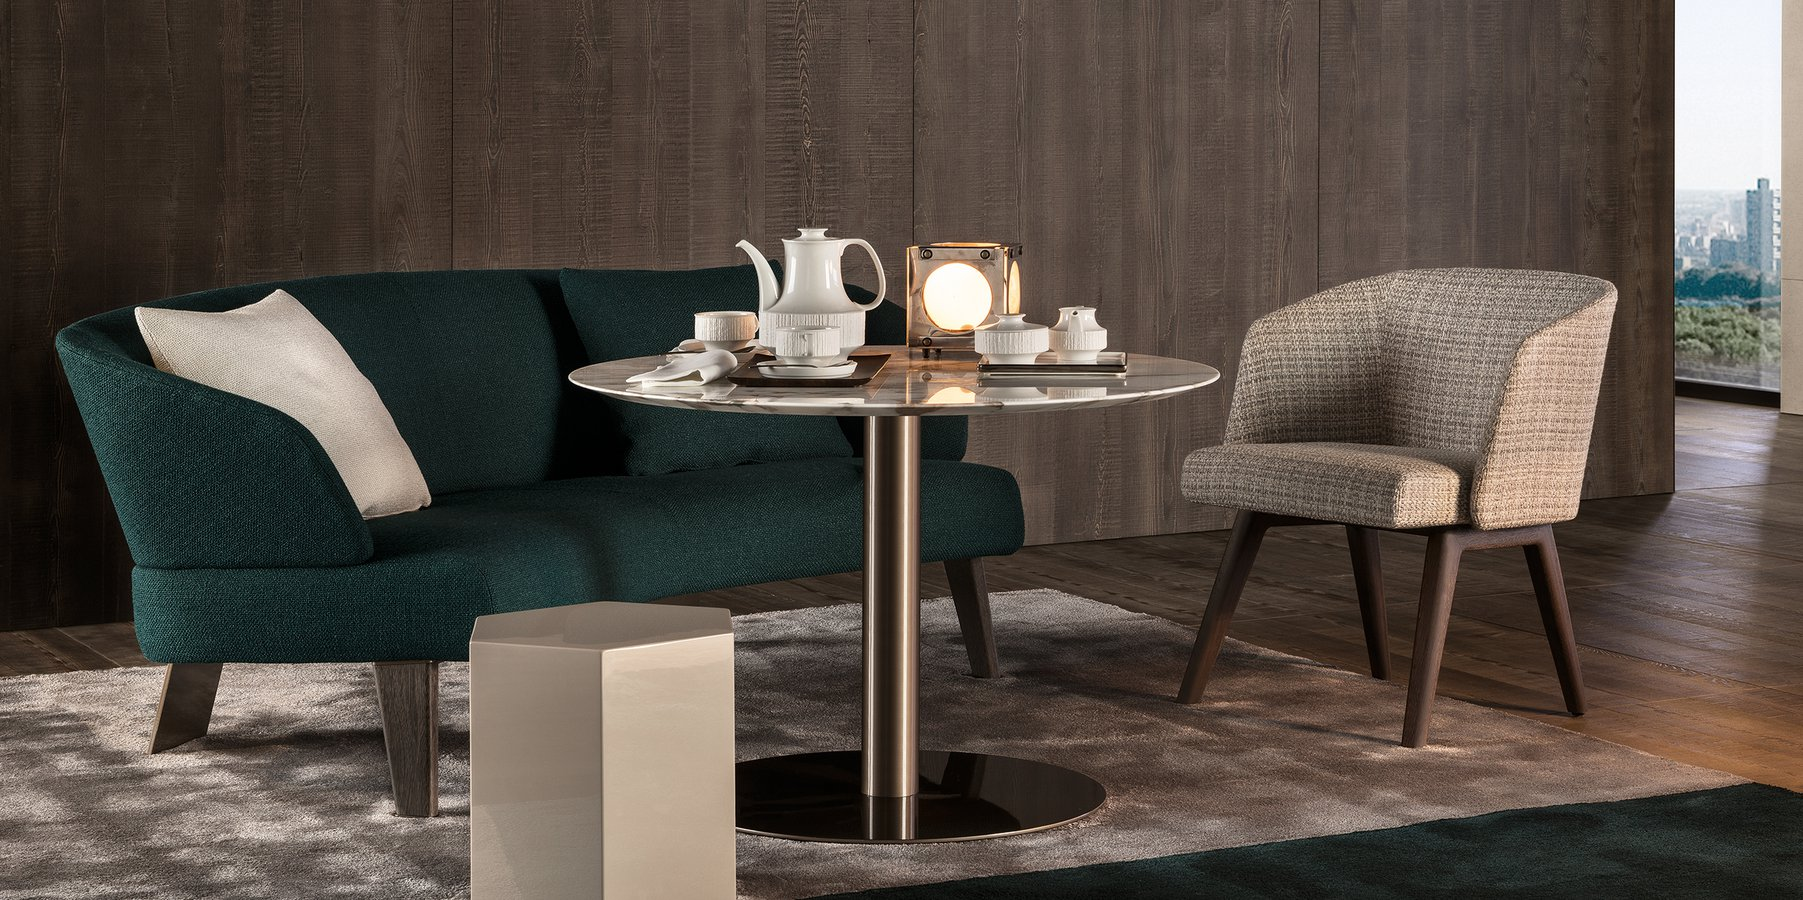 Bellagio Lounge Coffee Table By Minotti Ecc